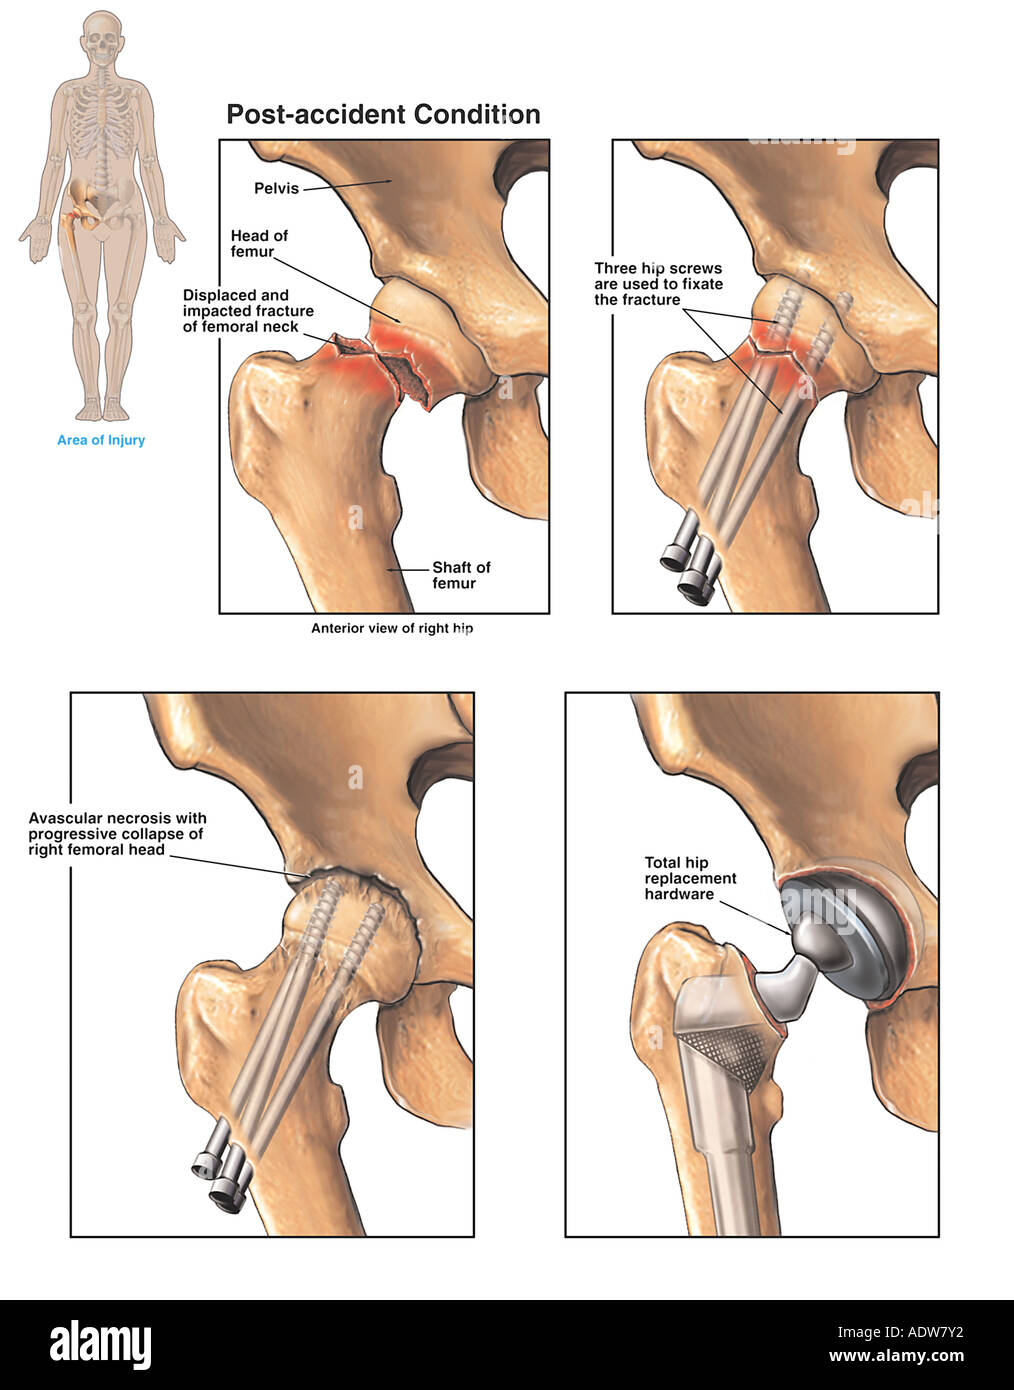 Traumatic Hip Fracture (Broken Hip) with Surgical Fixation and Total Joint Replacement (Arthroplasty). - Stock Image